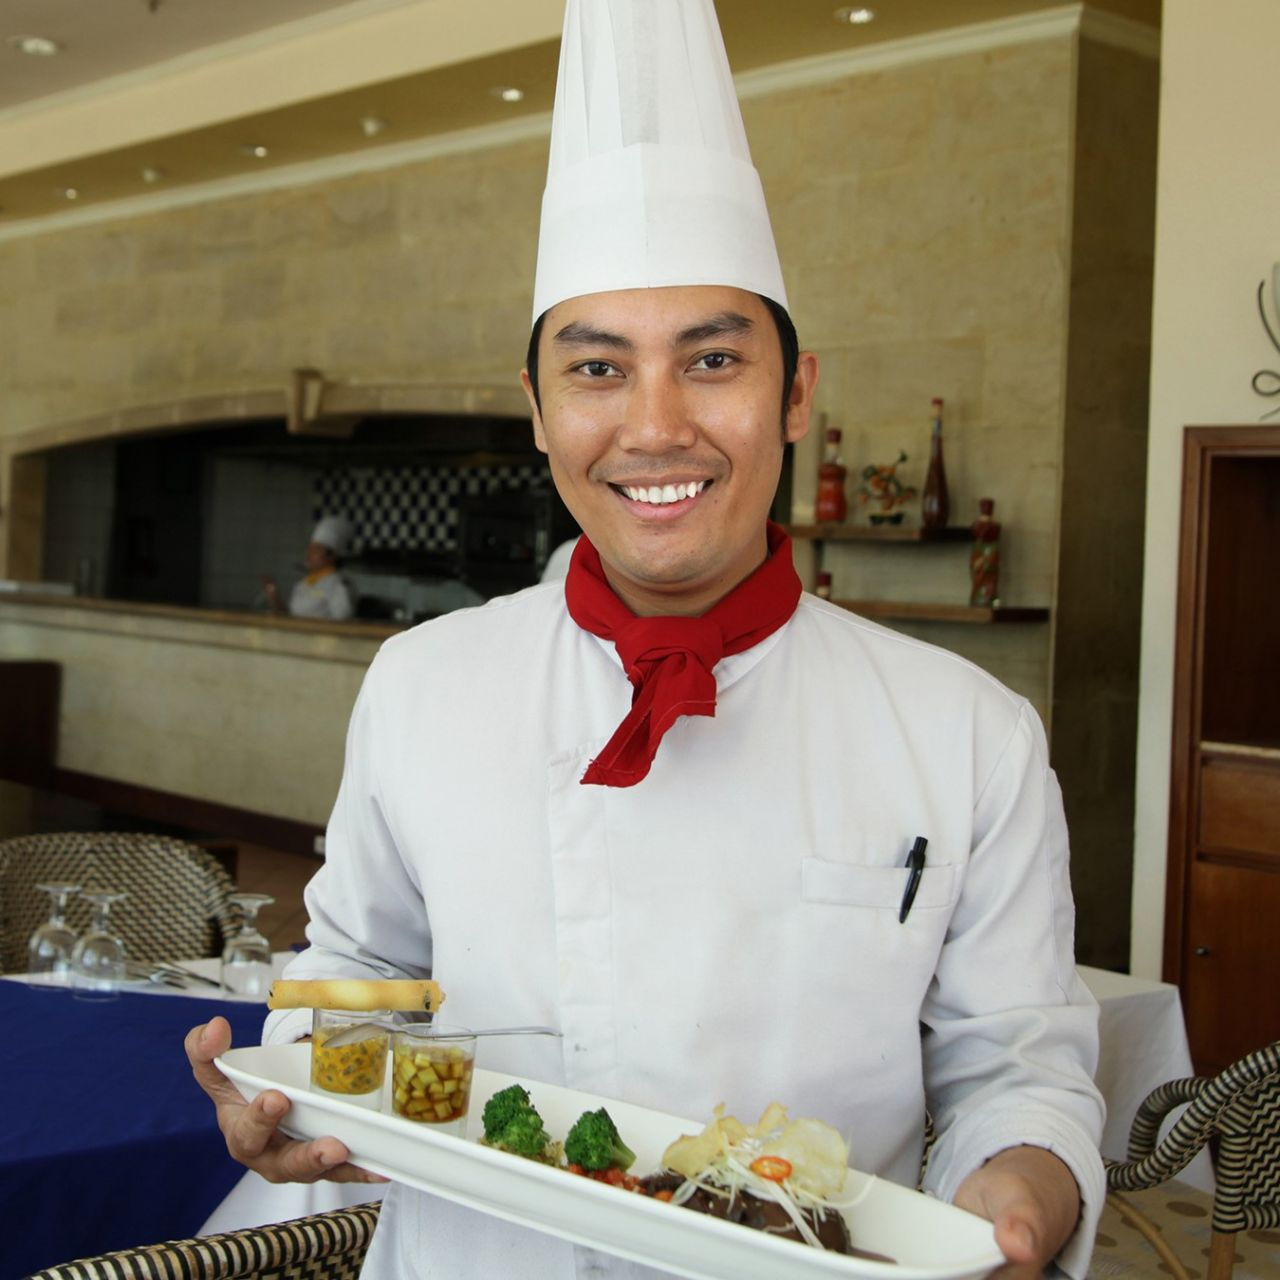 Young chef employed in a hotel holding some canapes